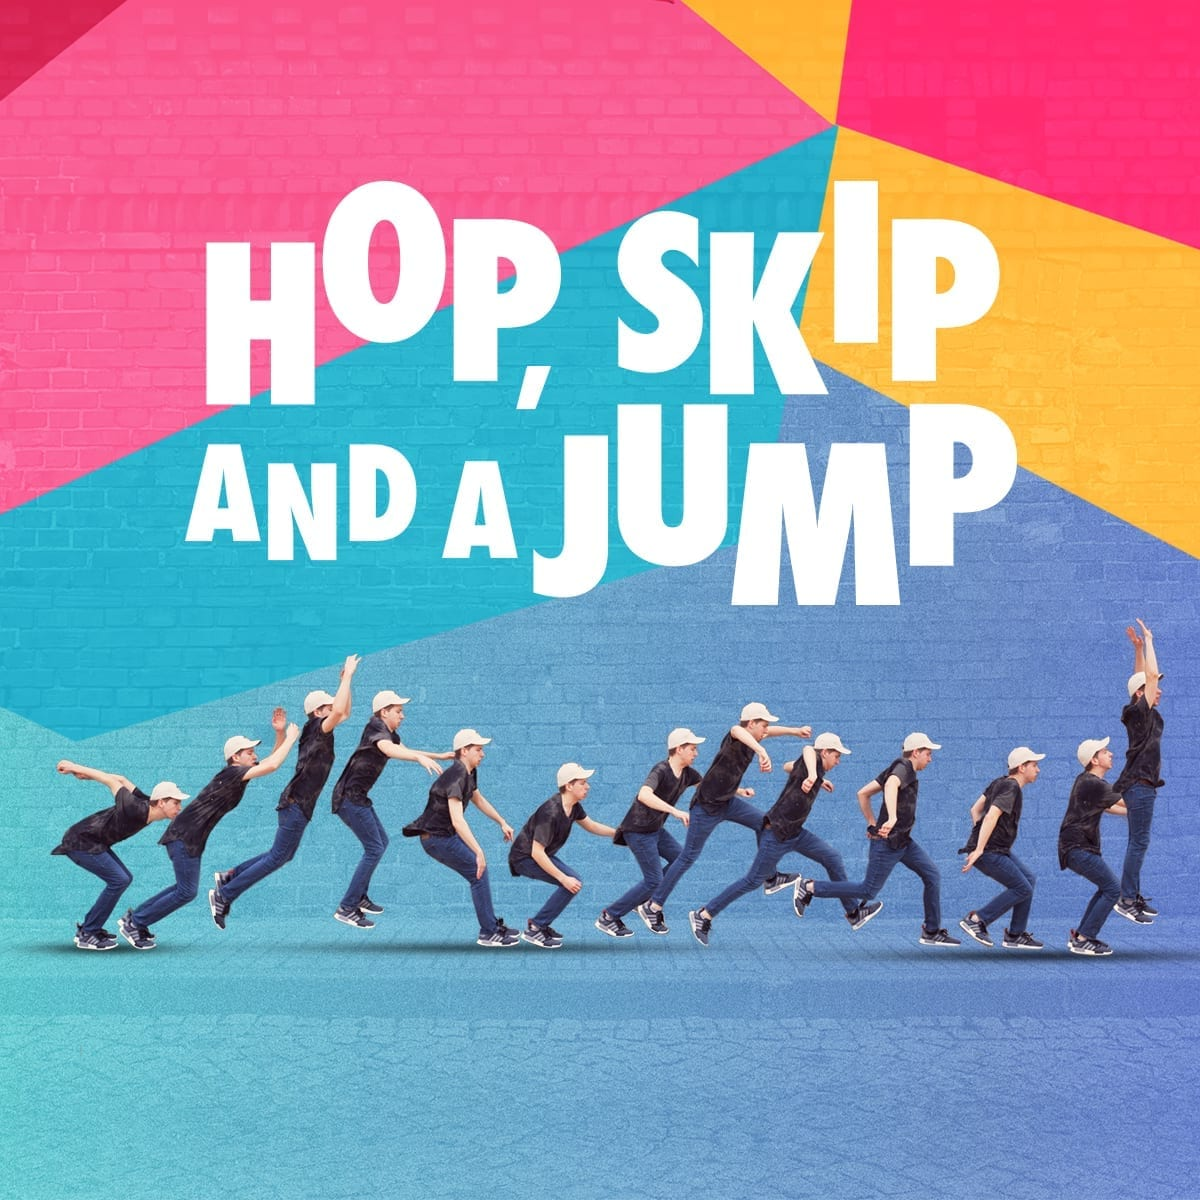 Hop, Skip, and a Jump - Sermon Series on Intentionality